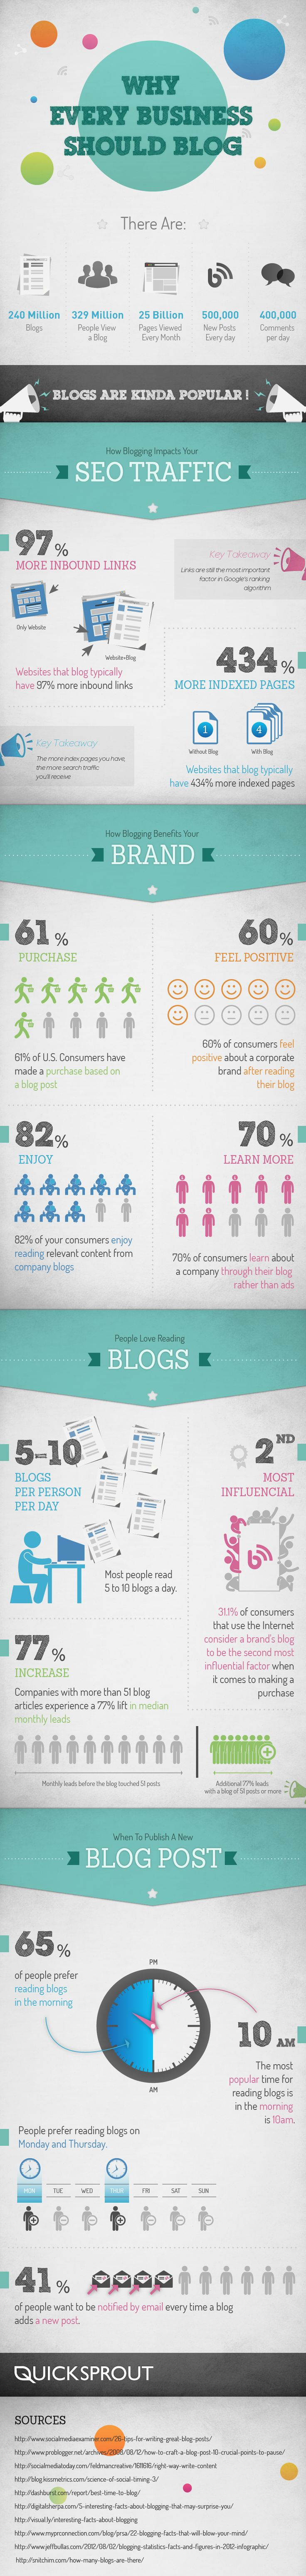 Why Every Business Should Blog #Business #Blog | #infographics repinned by @Piktochart